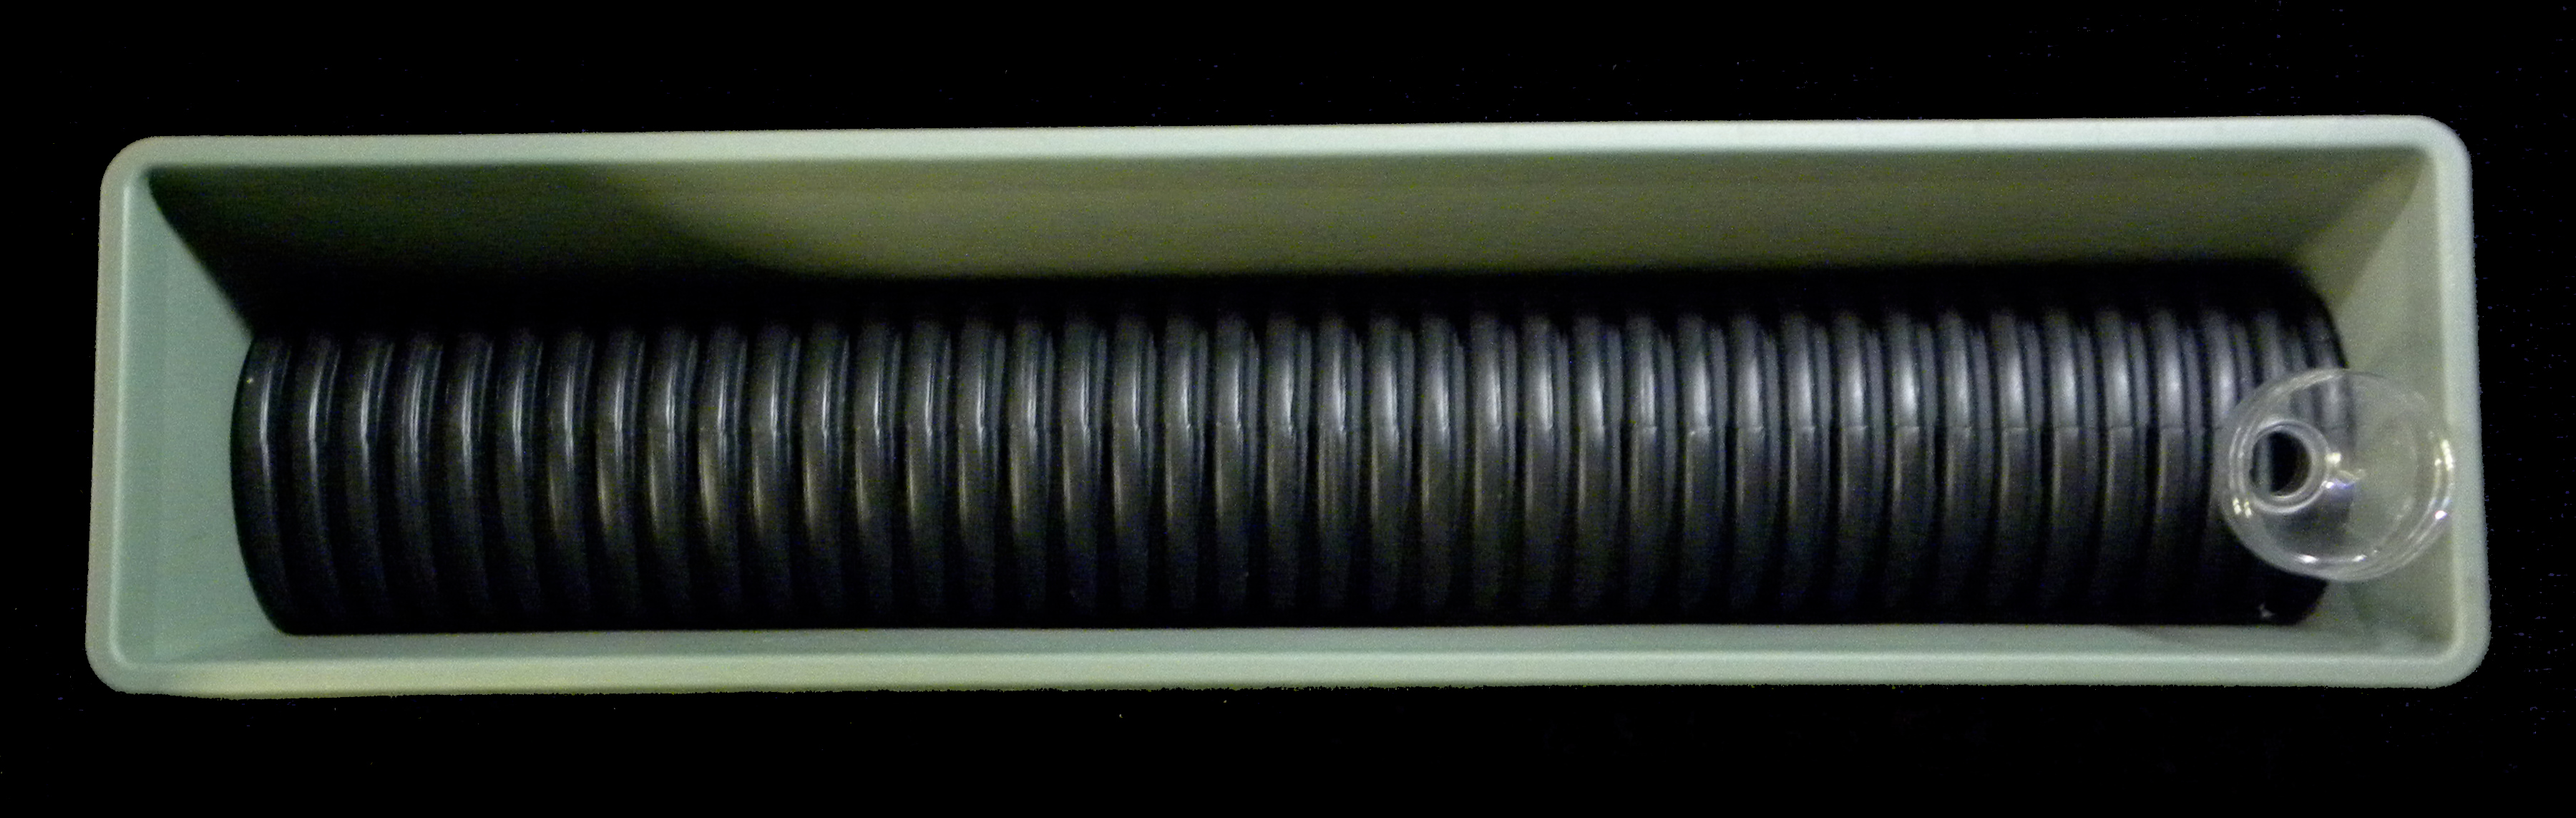 important corrugated drain pipe is perforated